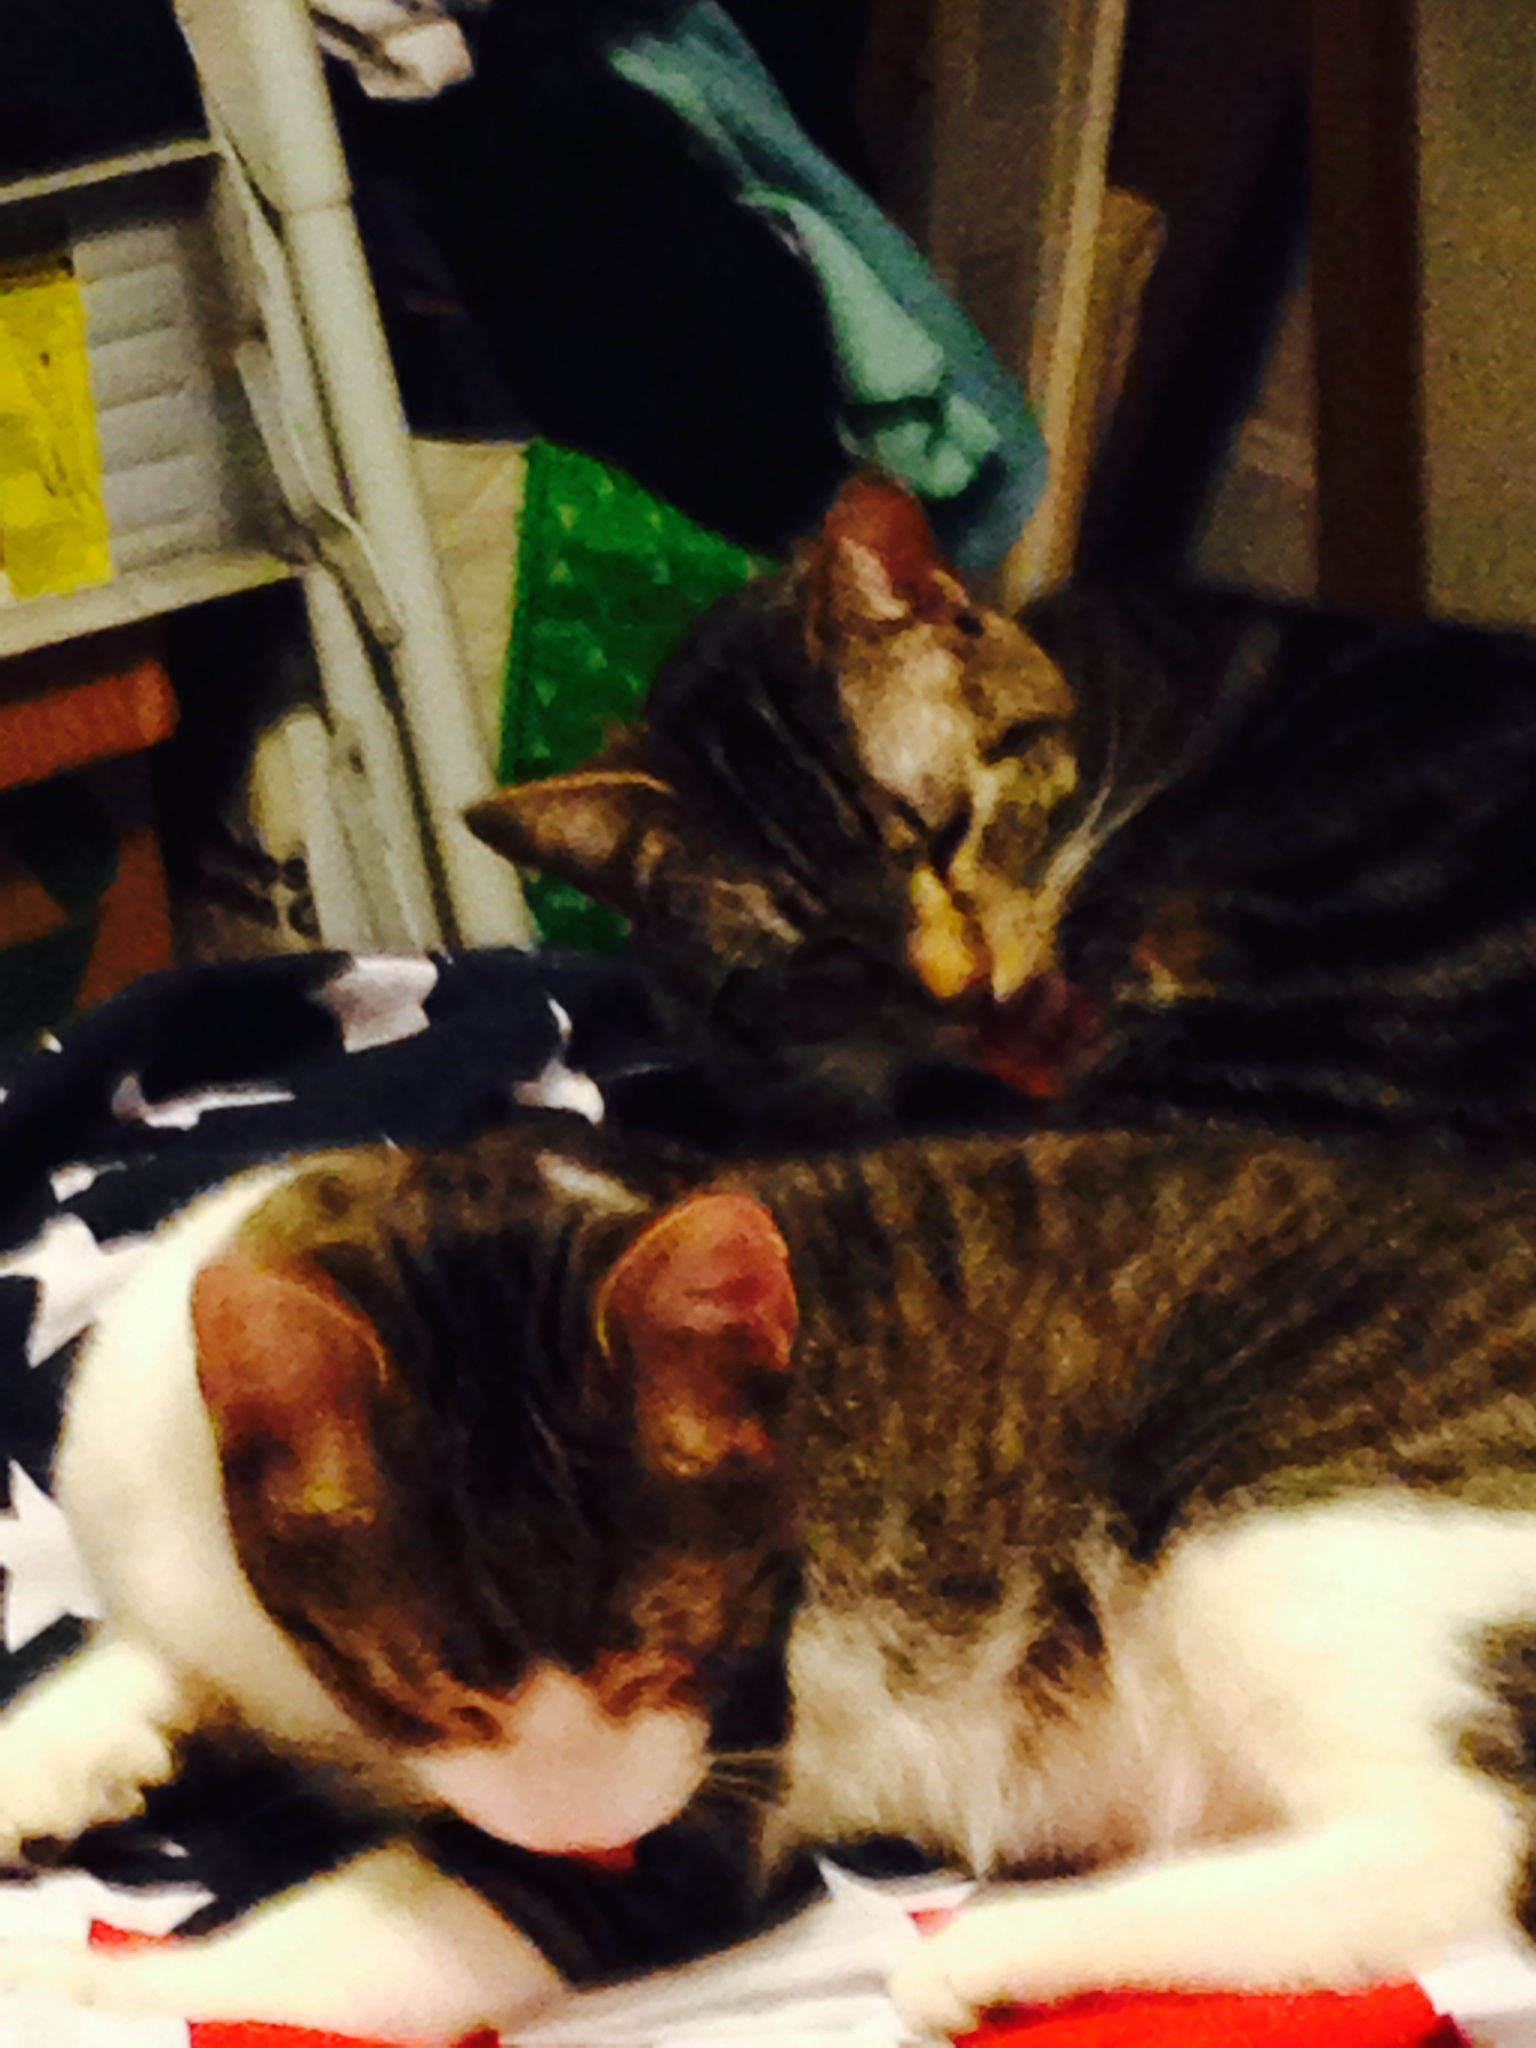 Alley in the front is our newest kitten. He's about six month old. Lucy is nearly three